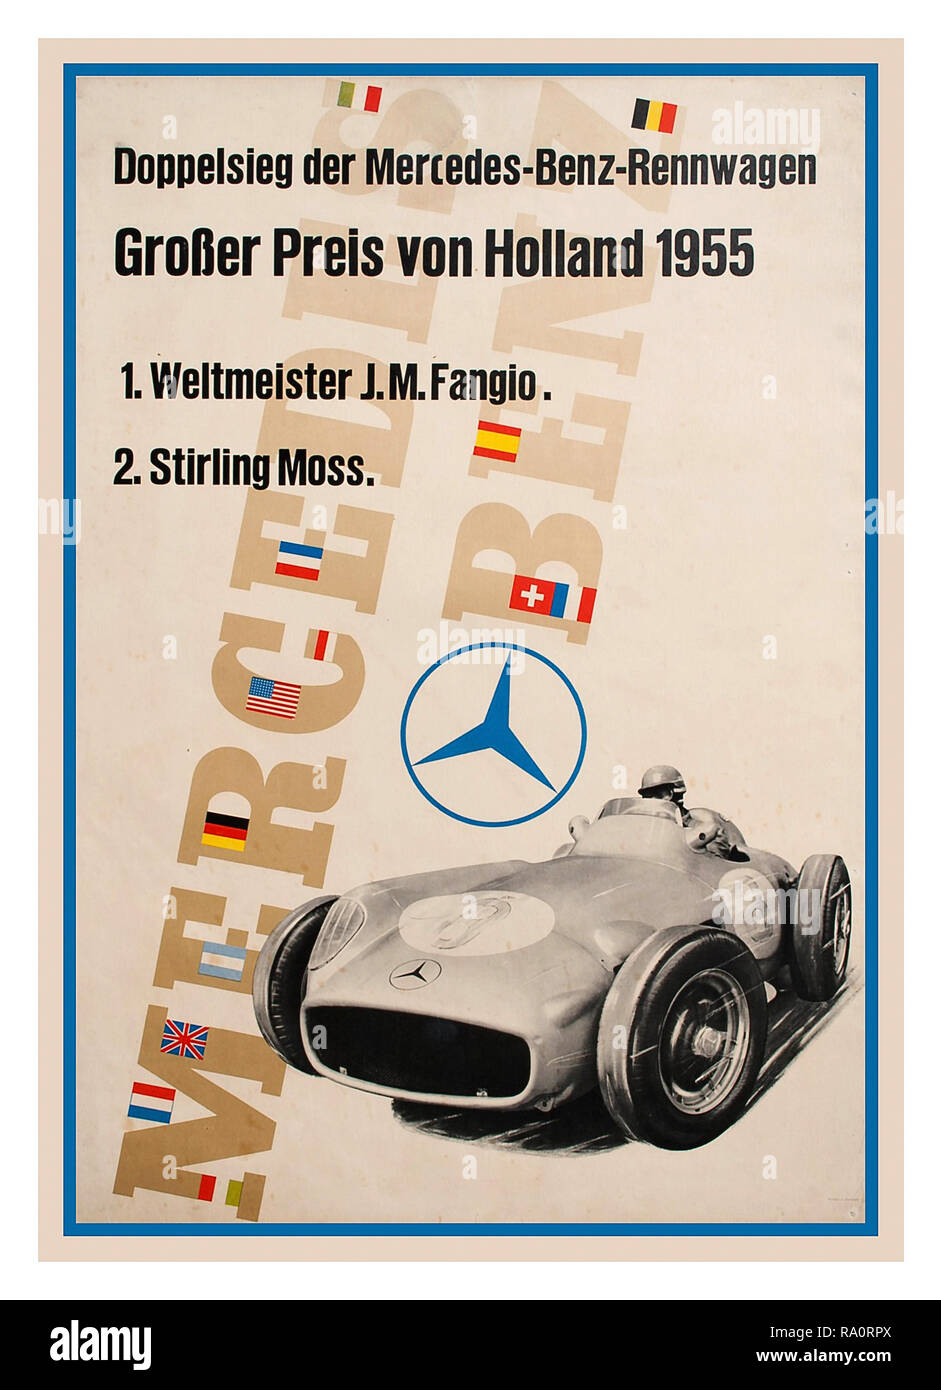 Grand Prix 1950's Vintage Poster Holland Grand Prix Motor Racing Competition Mercedes Benz Victory with Juan Fangio First Place Stirling Moss Second Place 1955 'Great Result in Holland'   'Double Victory with Mercedes Racing Car' - Stock Image